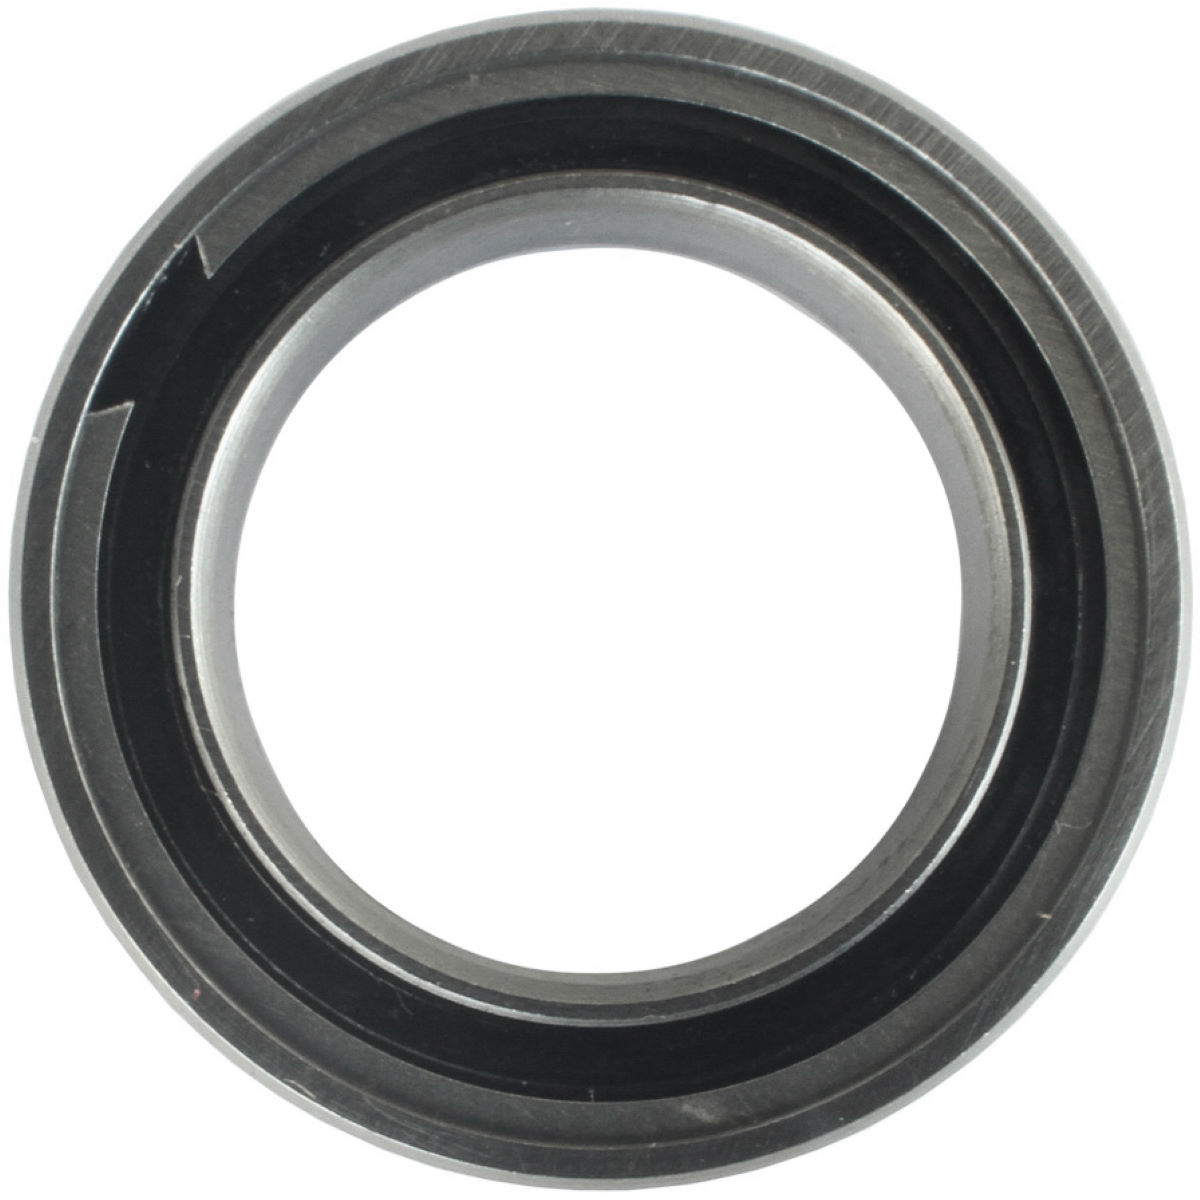 Enduro Bearings Enduro Bearings ABEC5 61803 SRS Bearing   Bottom Bracket Spares